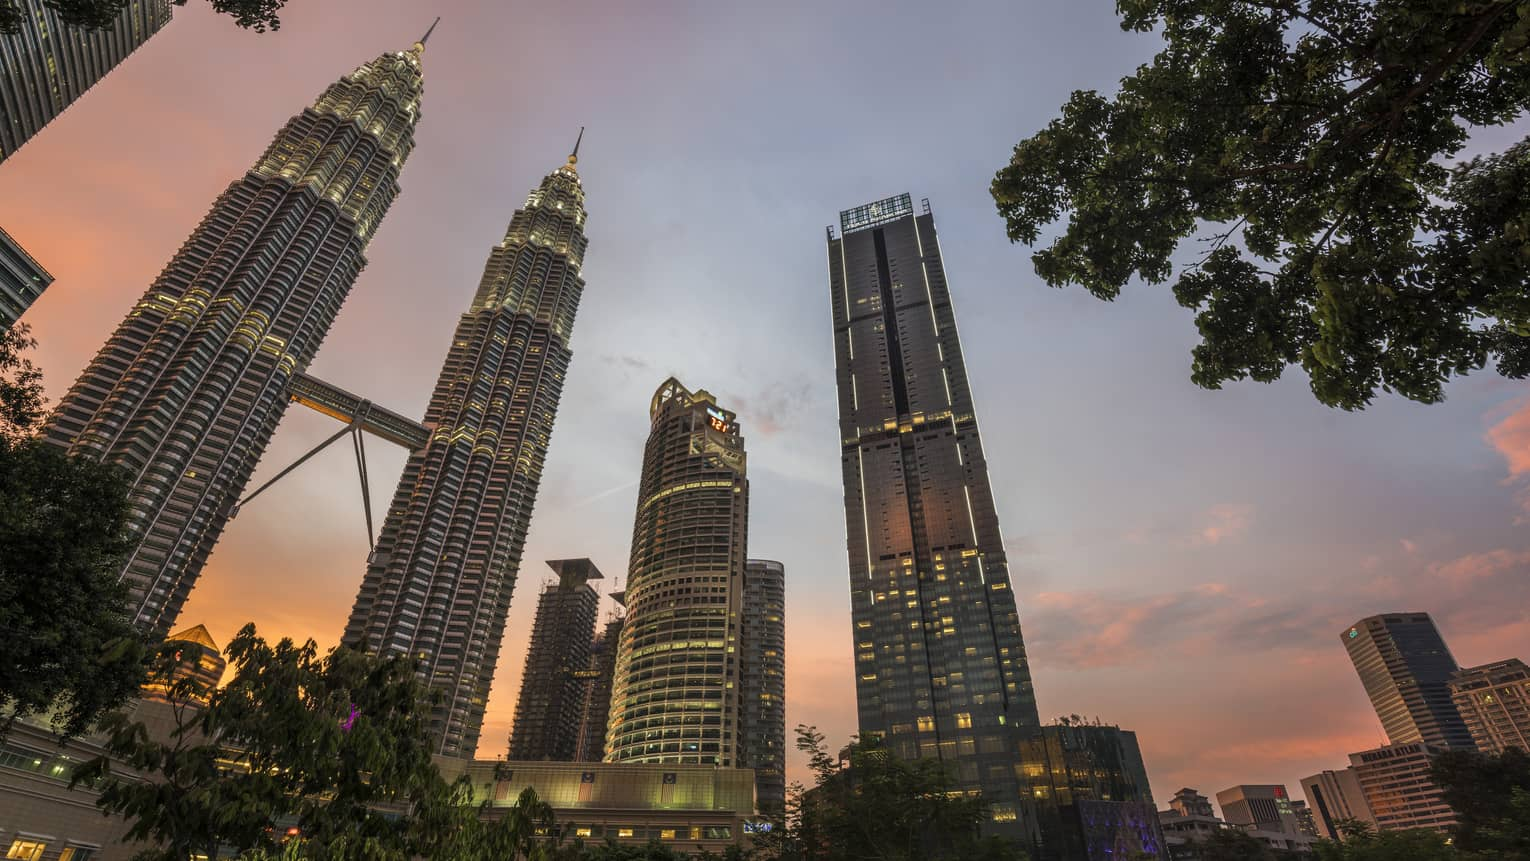 Four Seasons Hotel Kuala Lumpur against the sunset with the city skyline